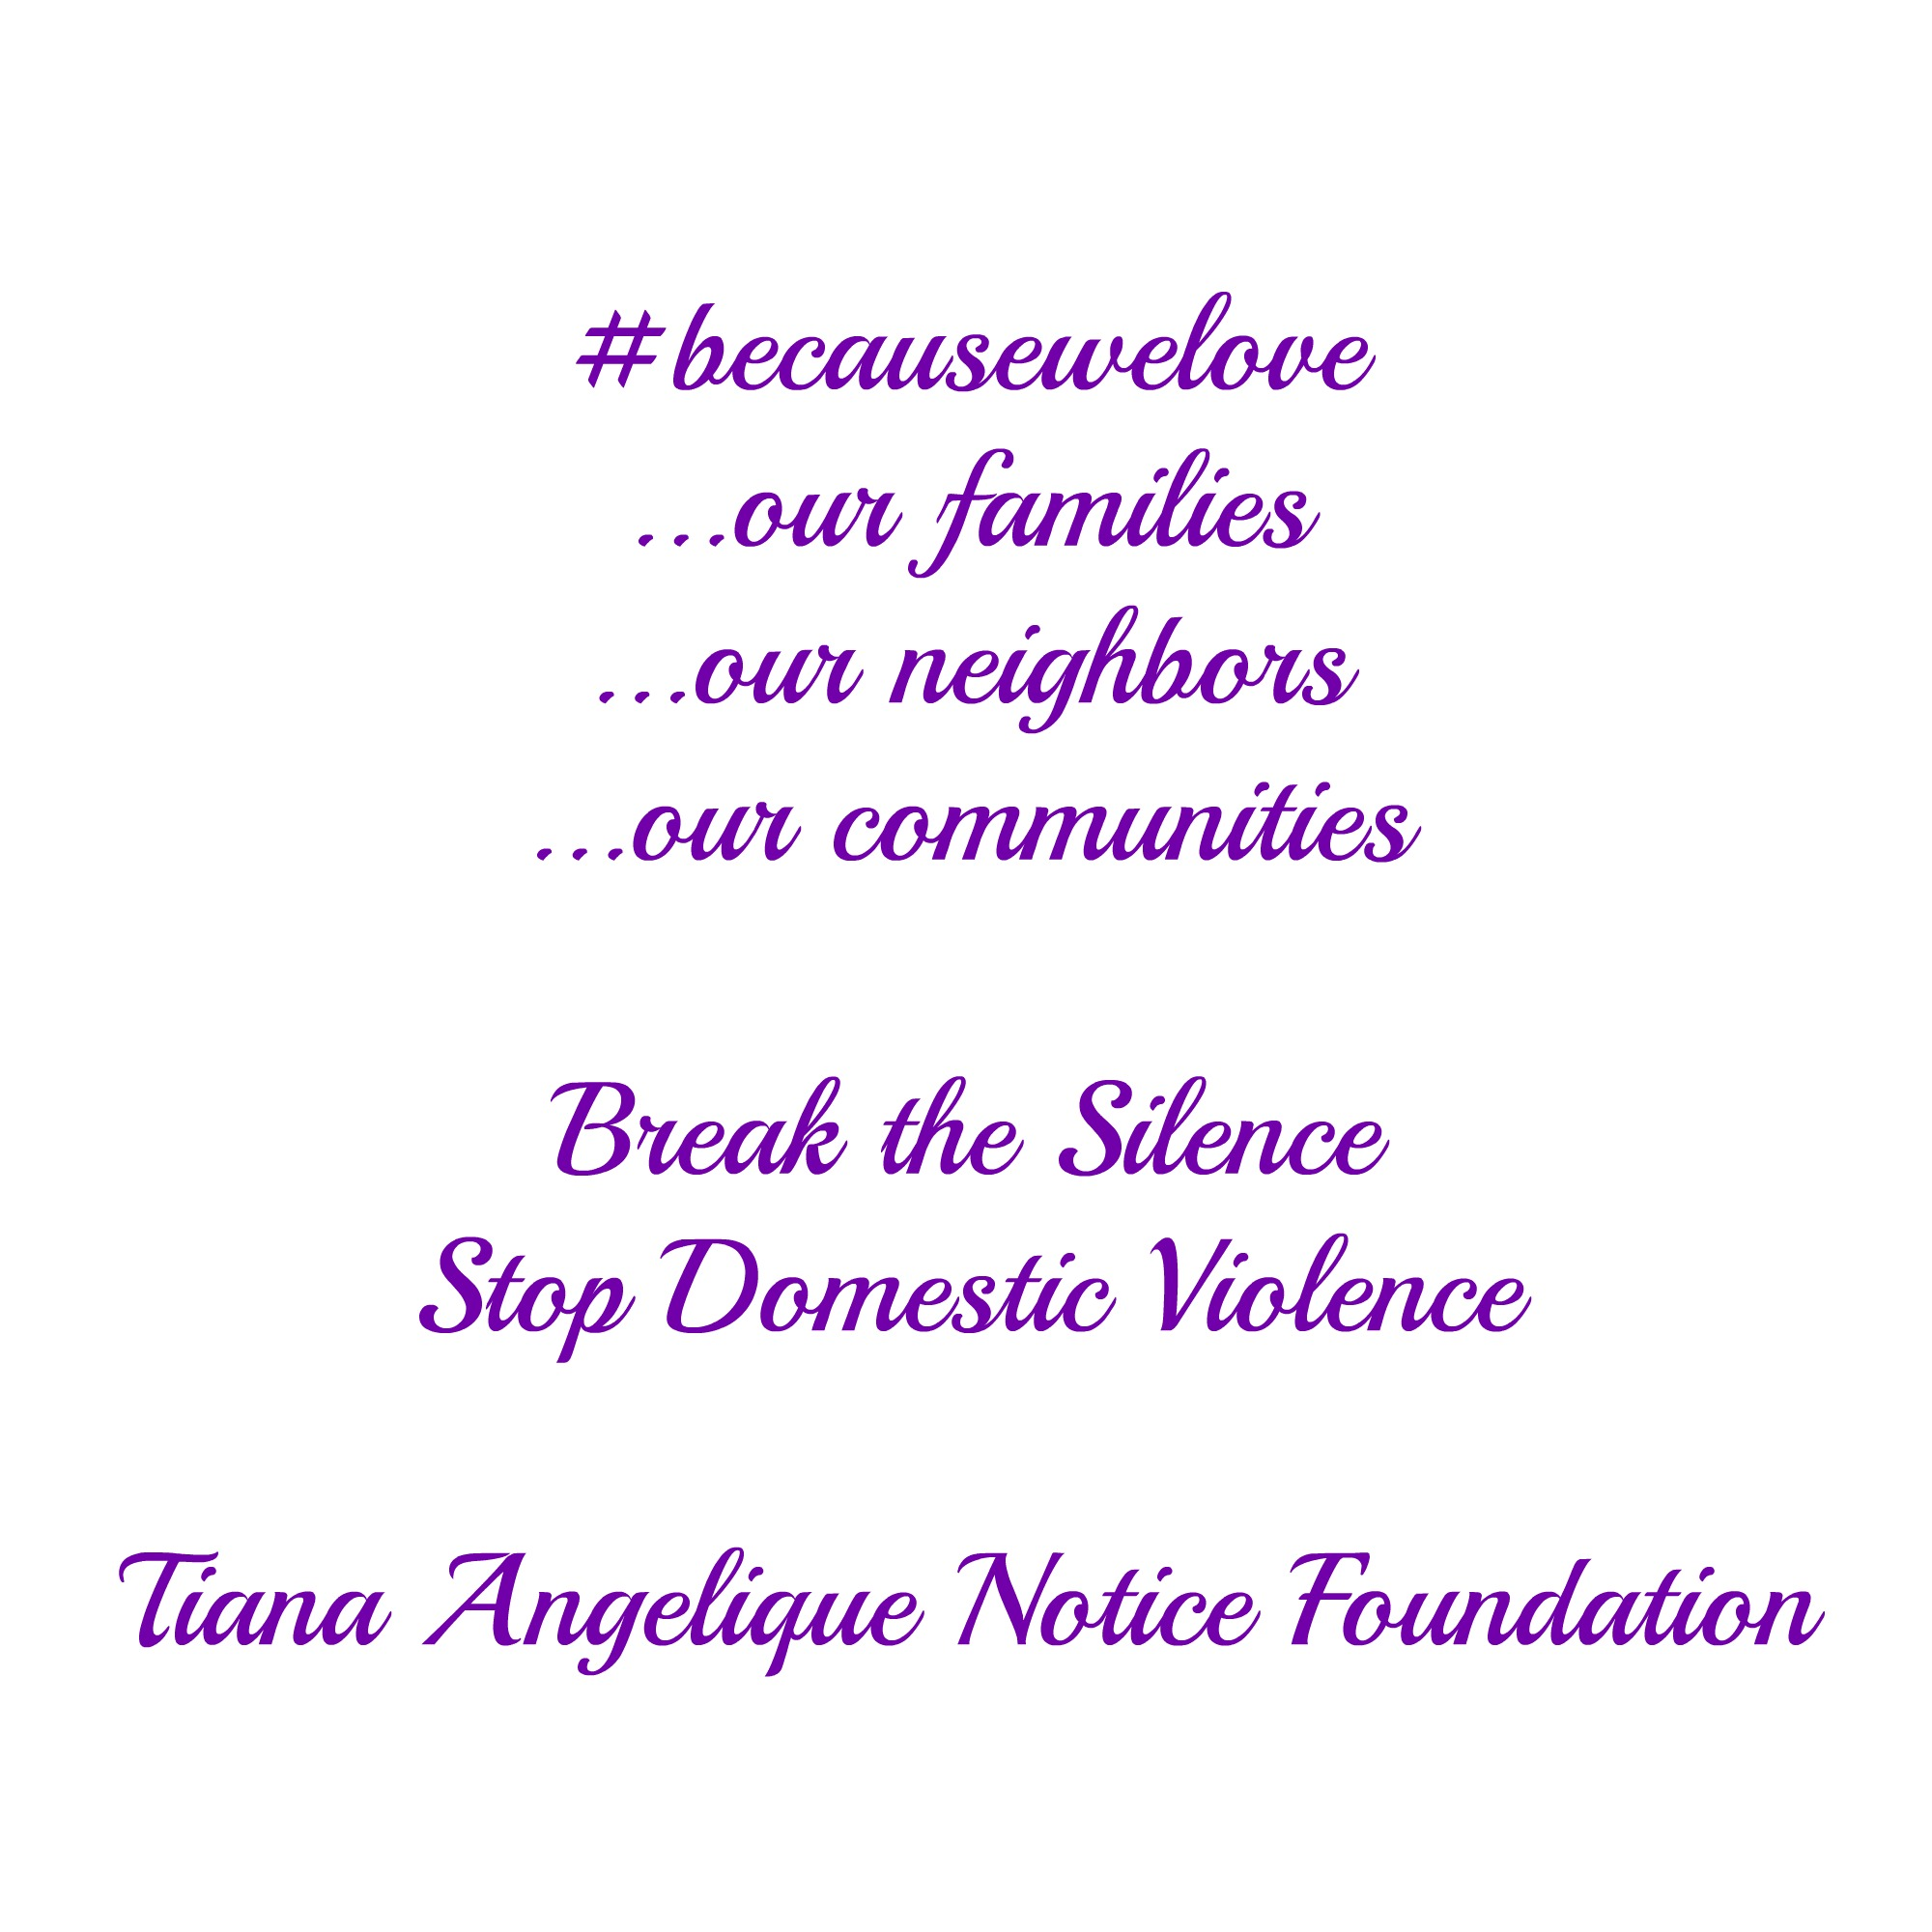 Domestic Violence Awareness Month The Tiana Angelique Notice